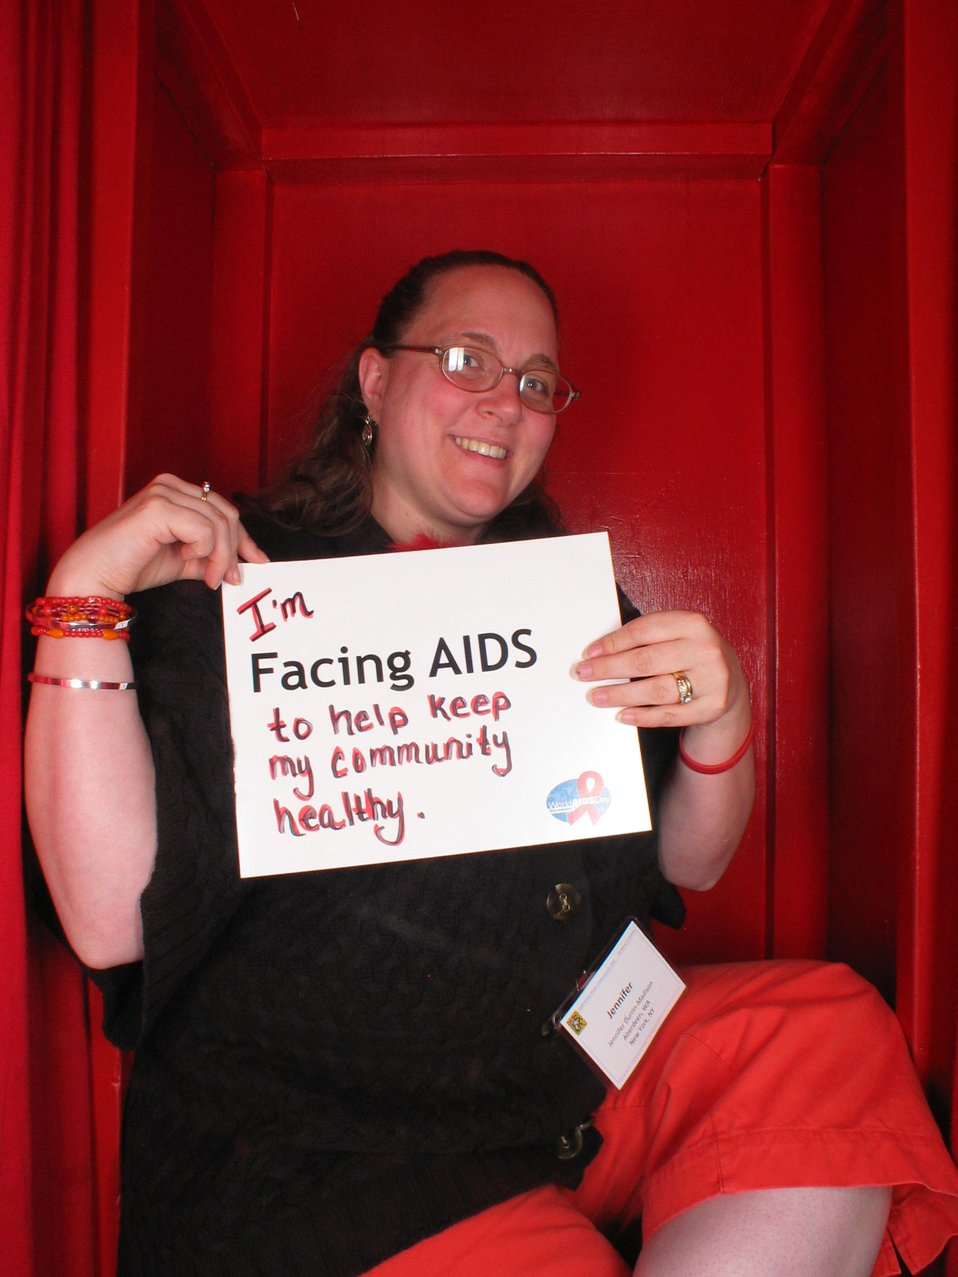 I'm Facing AIDS to help keep my community healthy.